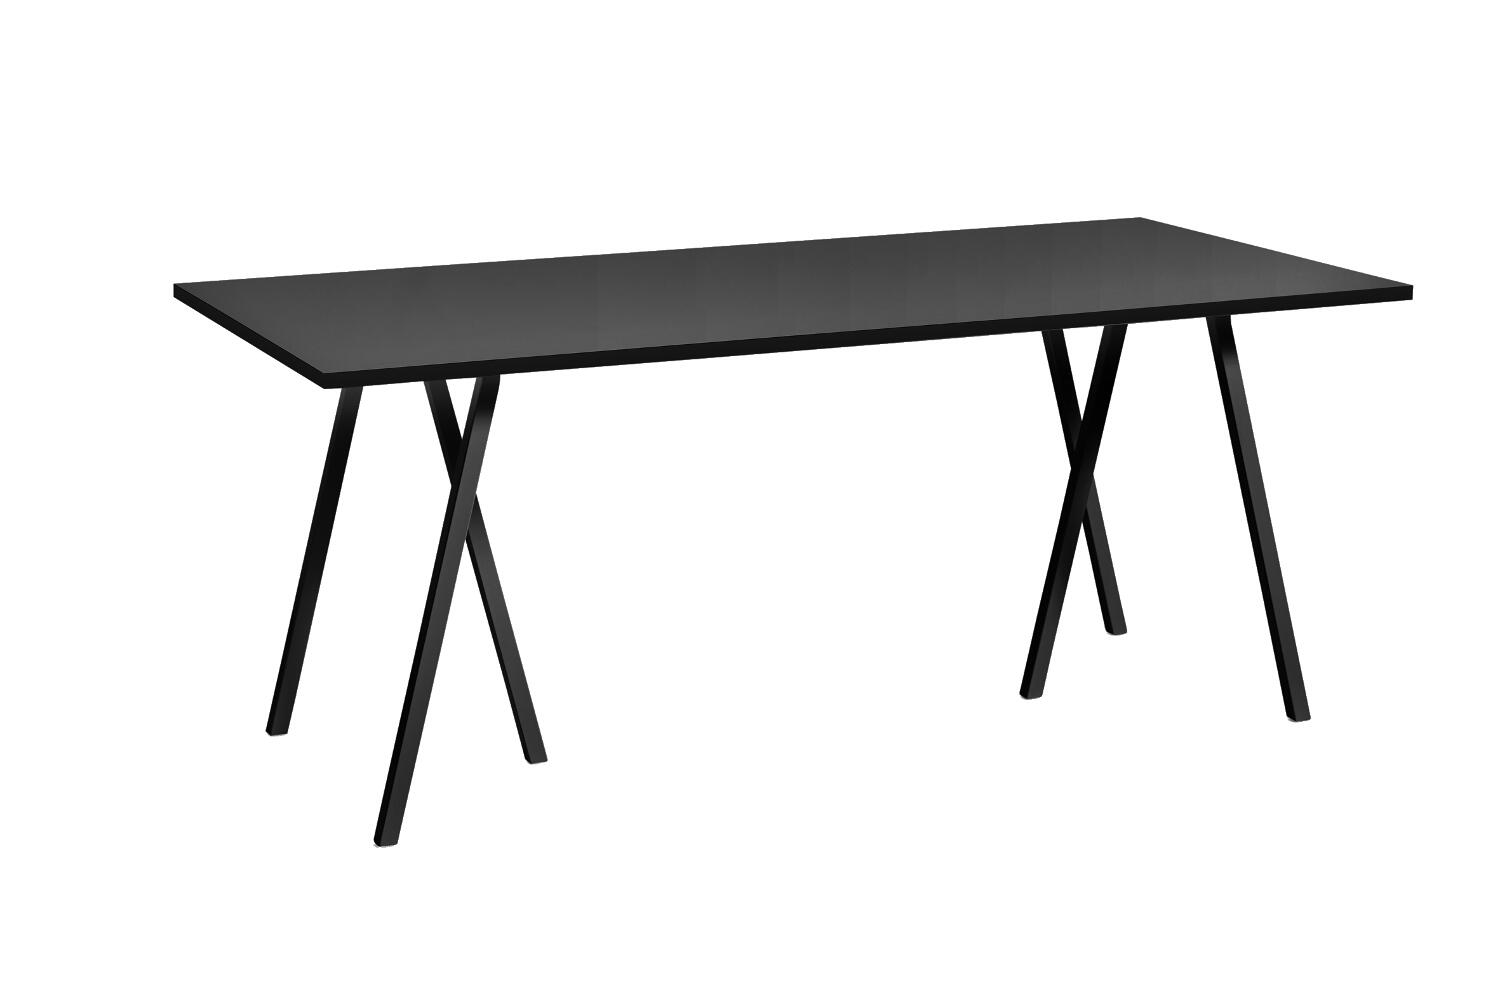 Loop Stand Table S - schwarz